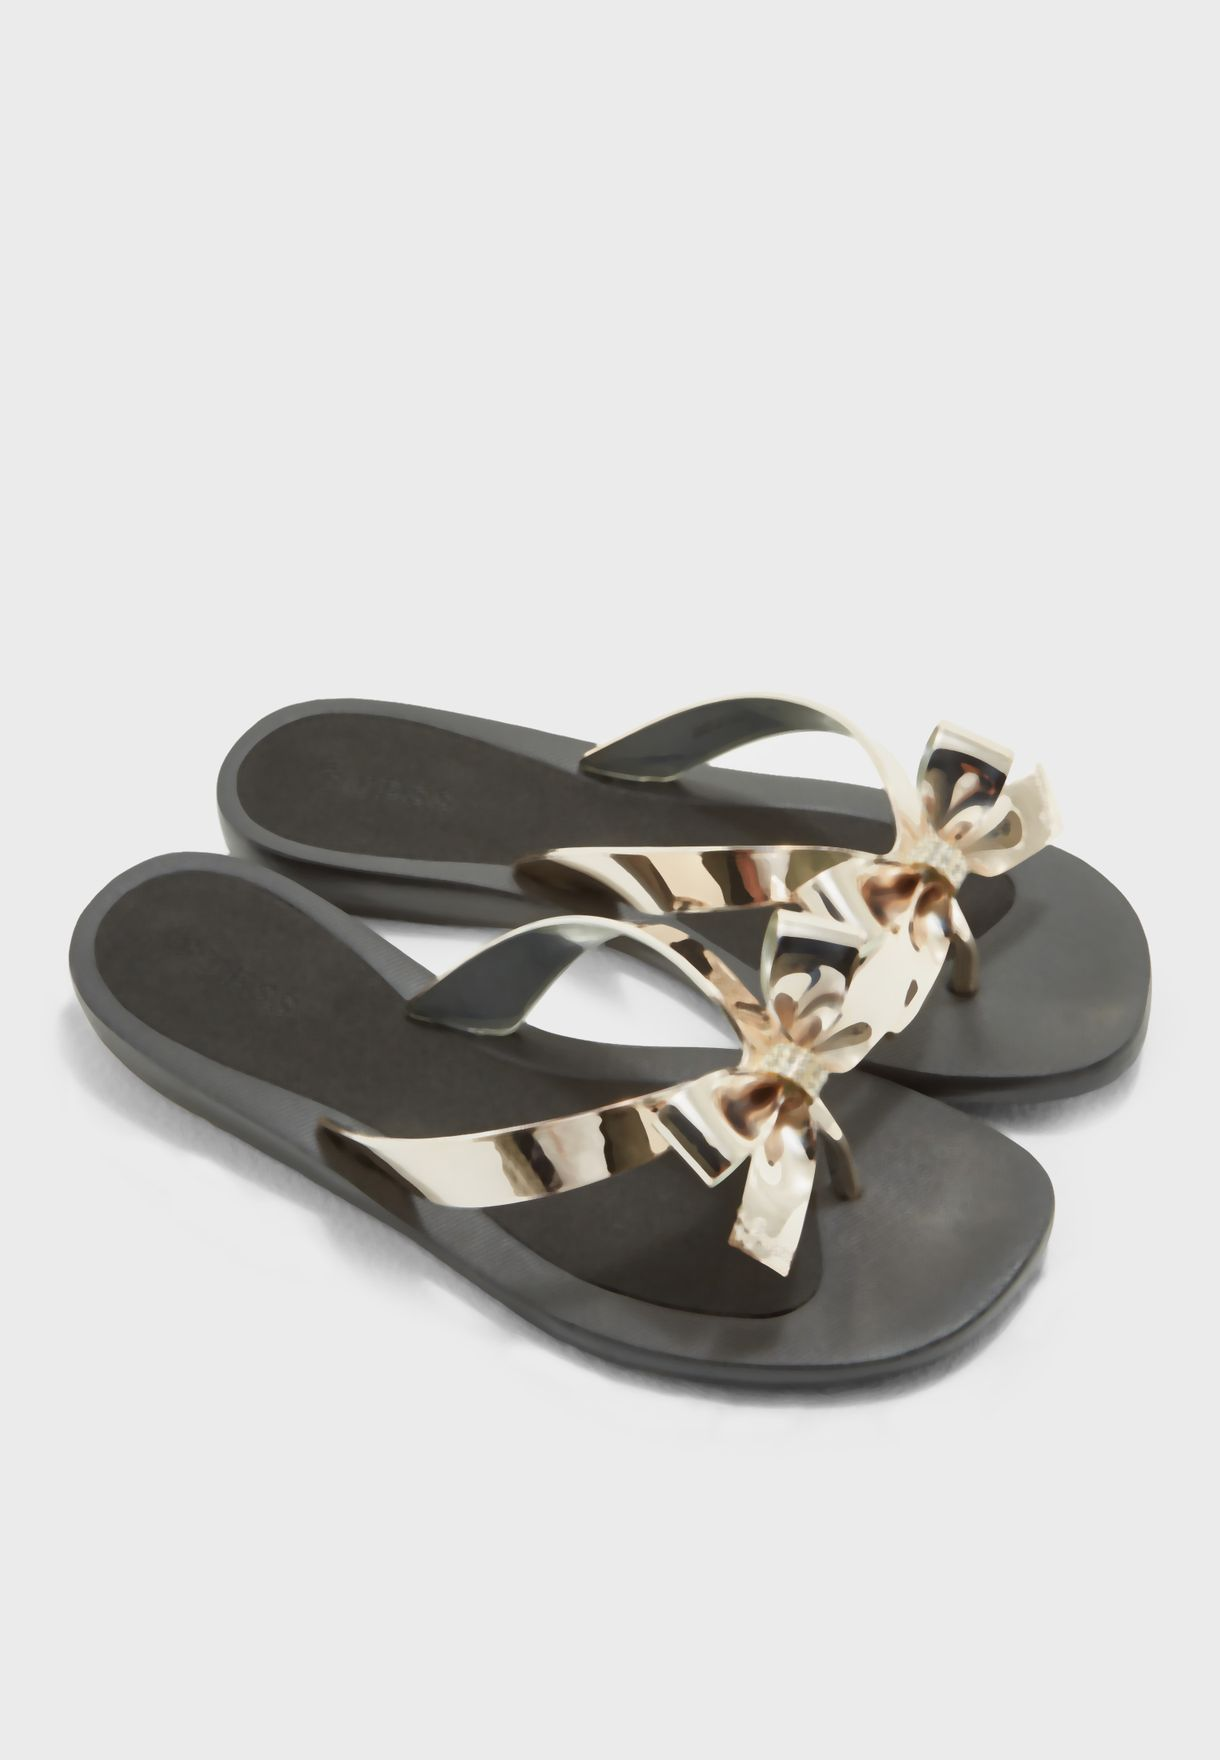 d20daf321 Shop Guess black Bow Thong Sandals gwTUTU9 for Women in UAE ...